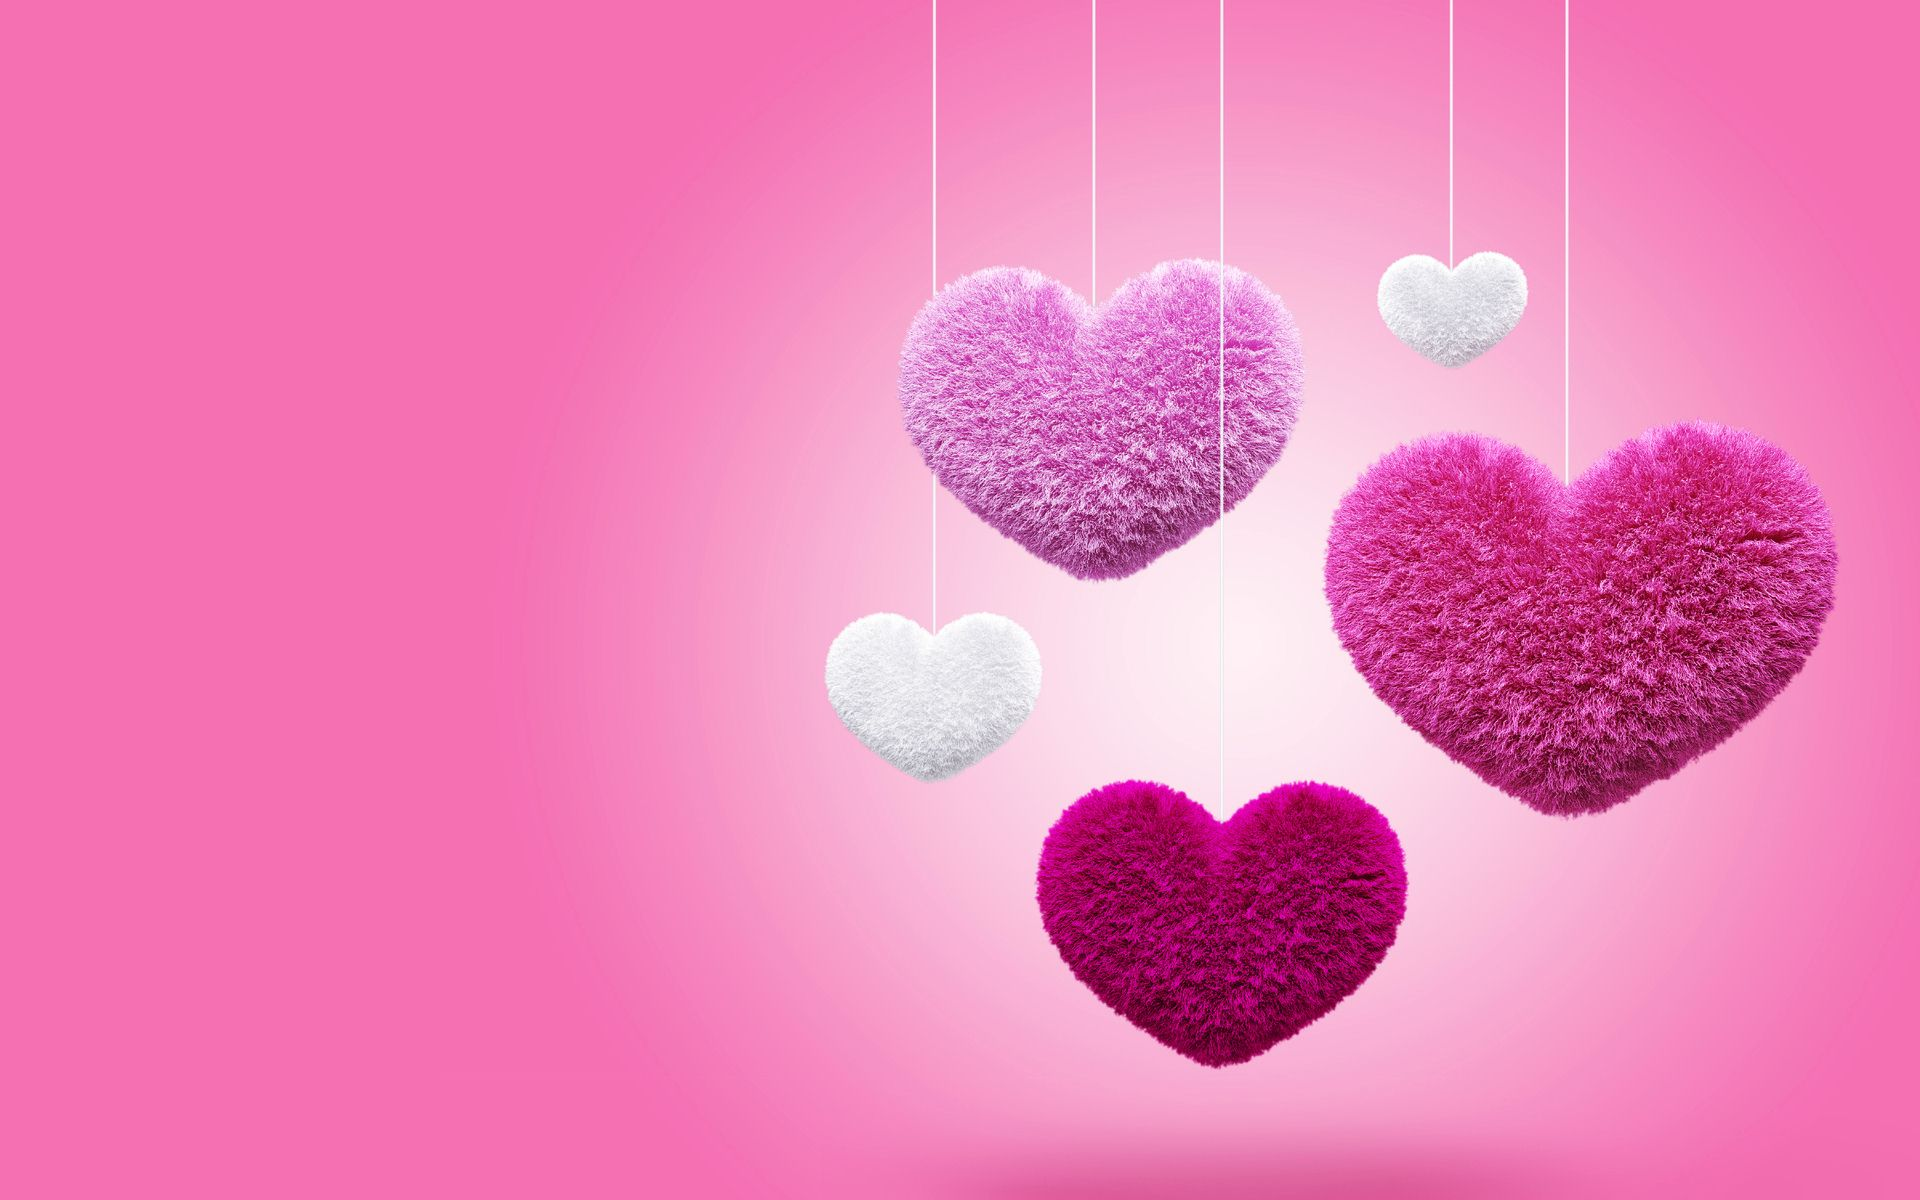 love pink wallpaper hd | pixelstalk